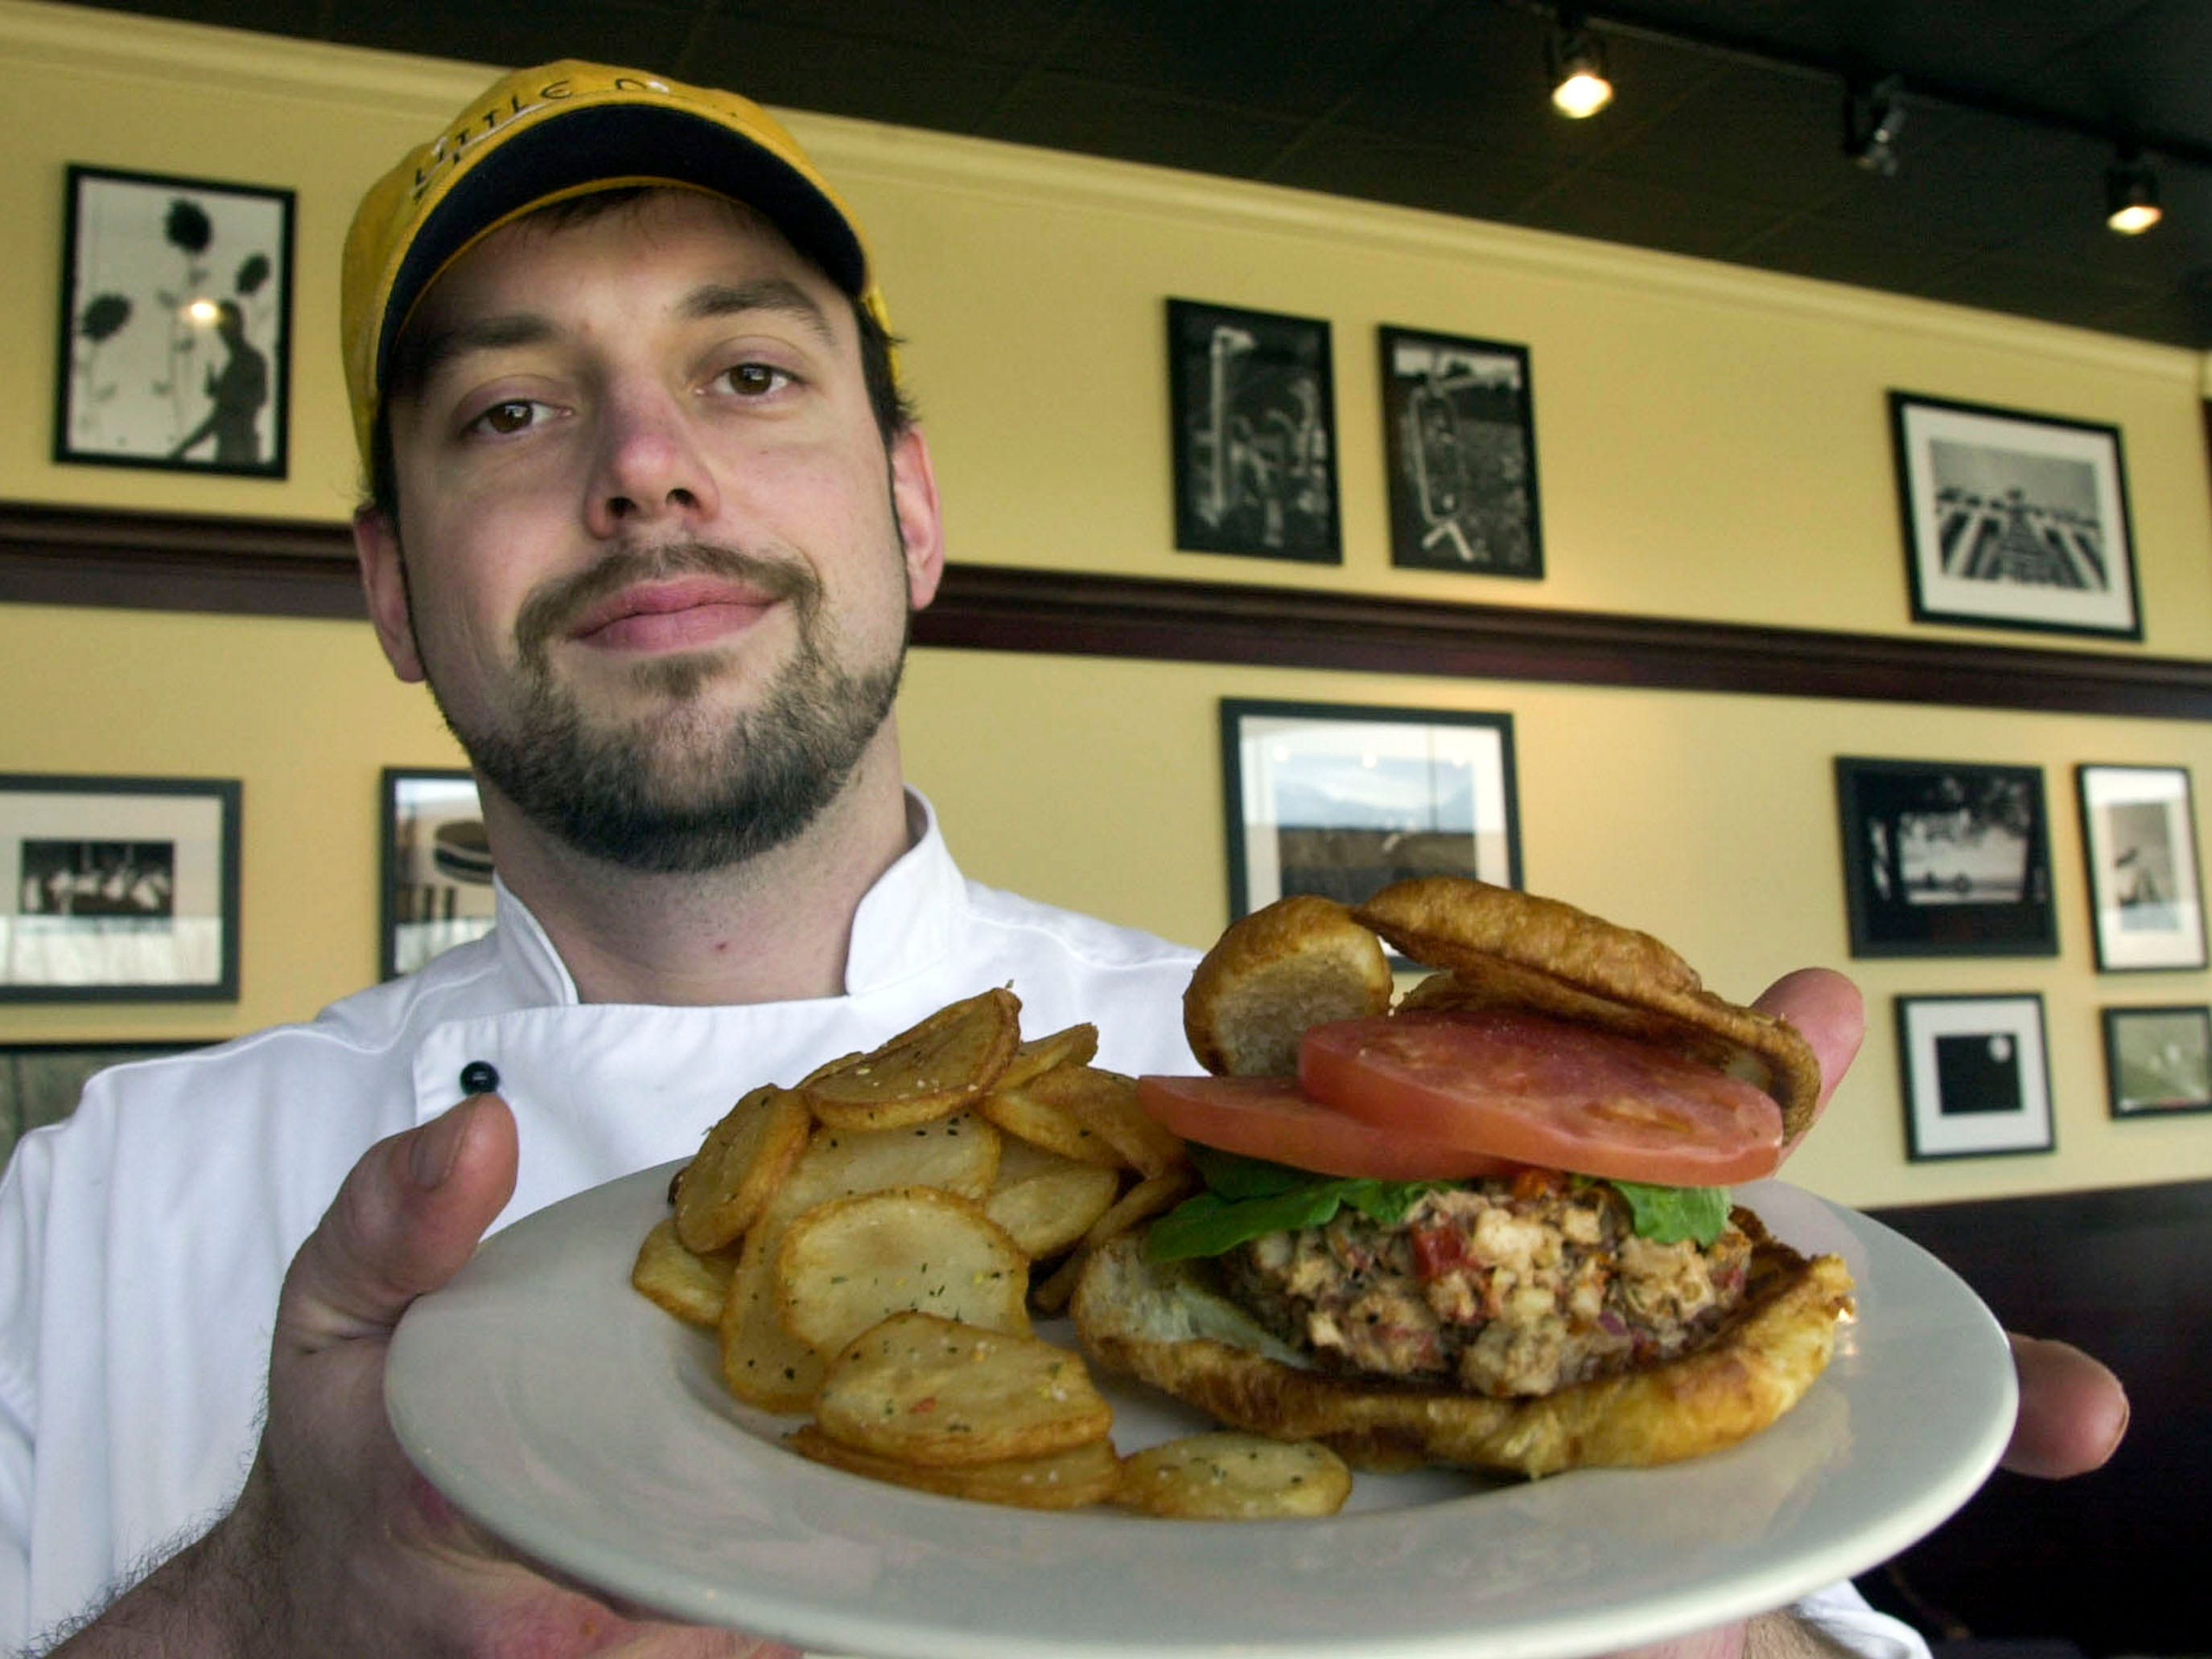 Mark McKinney, head chef at Little City Restaurant in Farragut, presents his sun-dried tomato chicken salad sandwich in 2001.